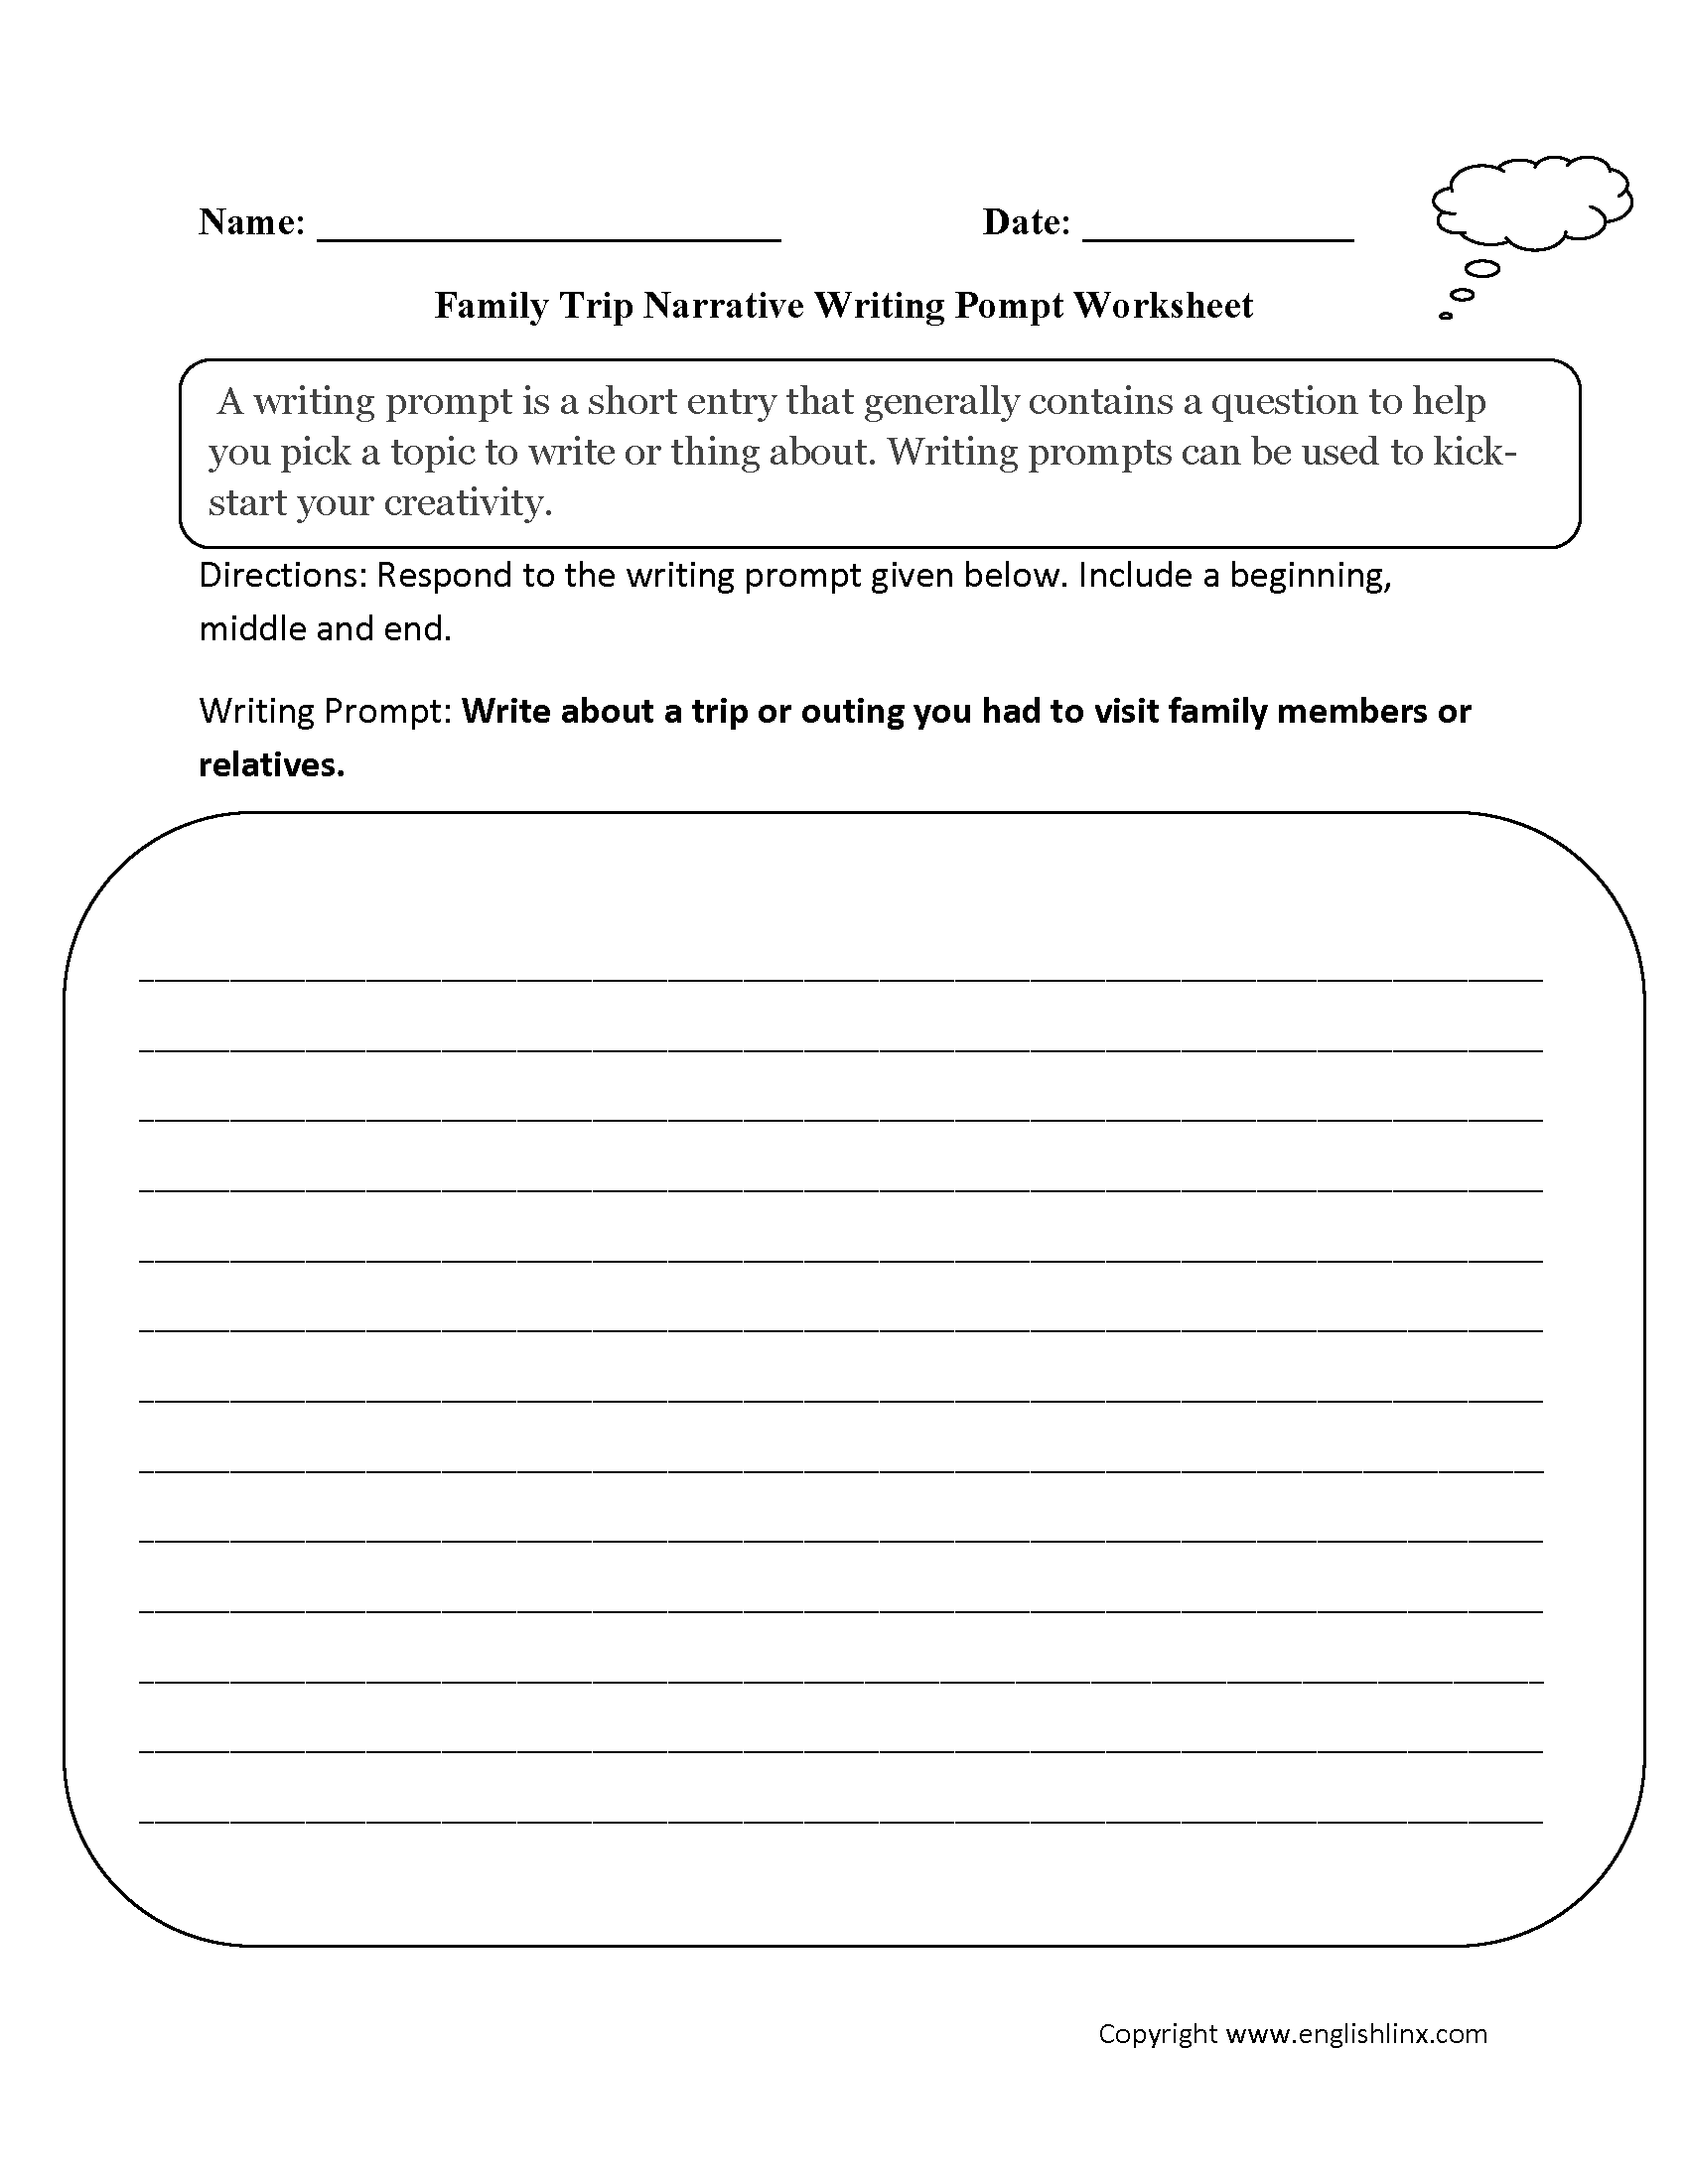 Worksheets Writing Worksheets For 6th Grade englishlinx com writing prompts worksheets worksheets